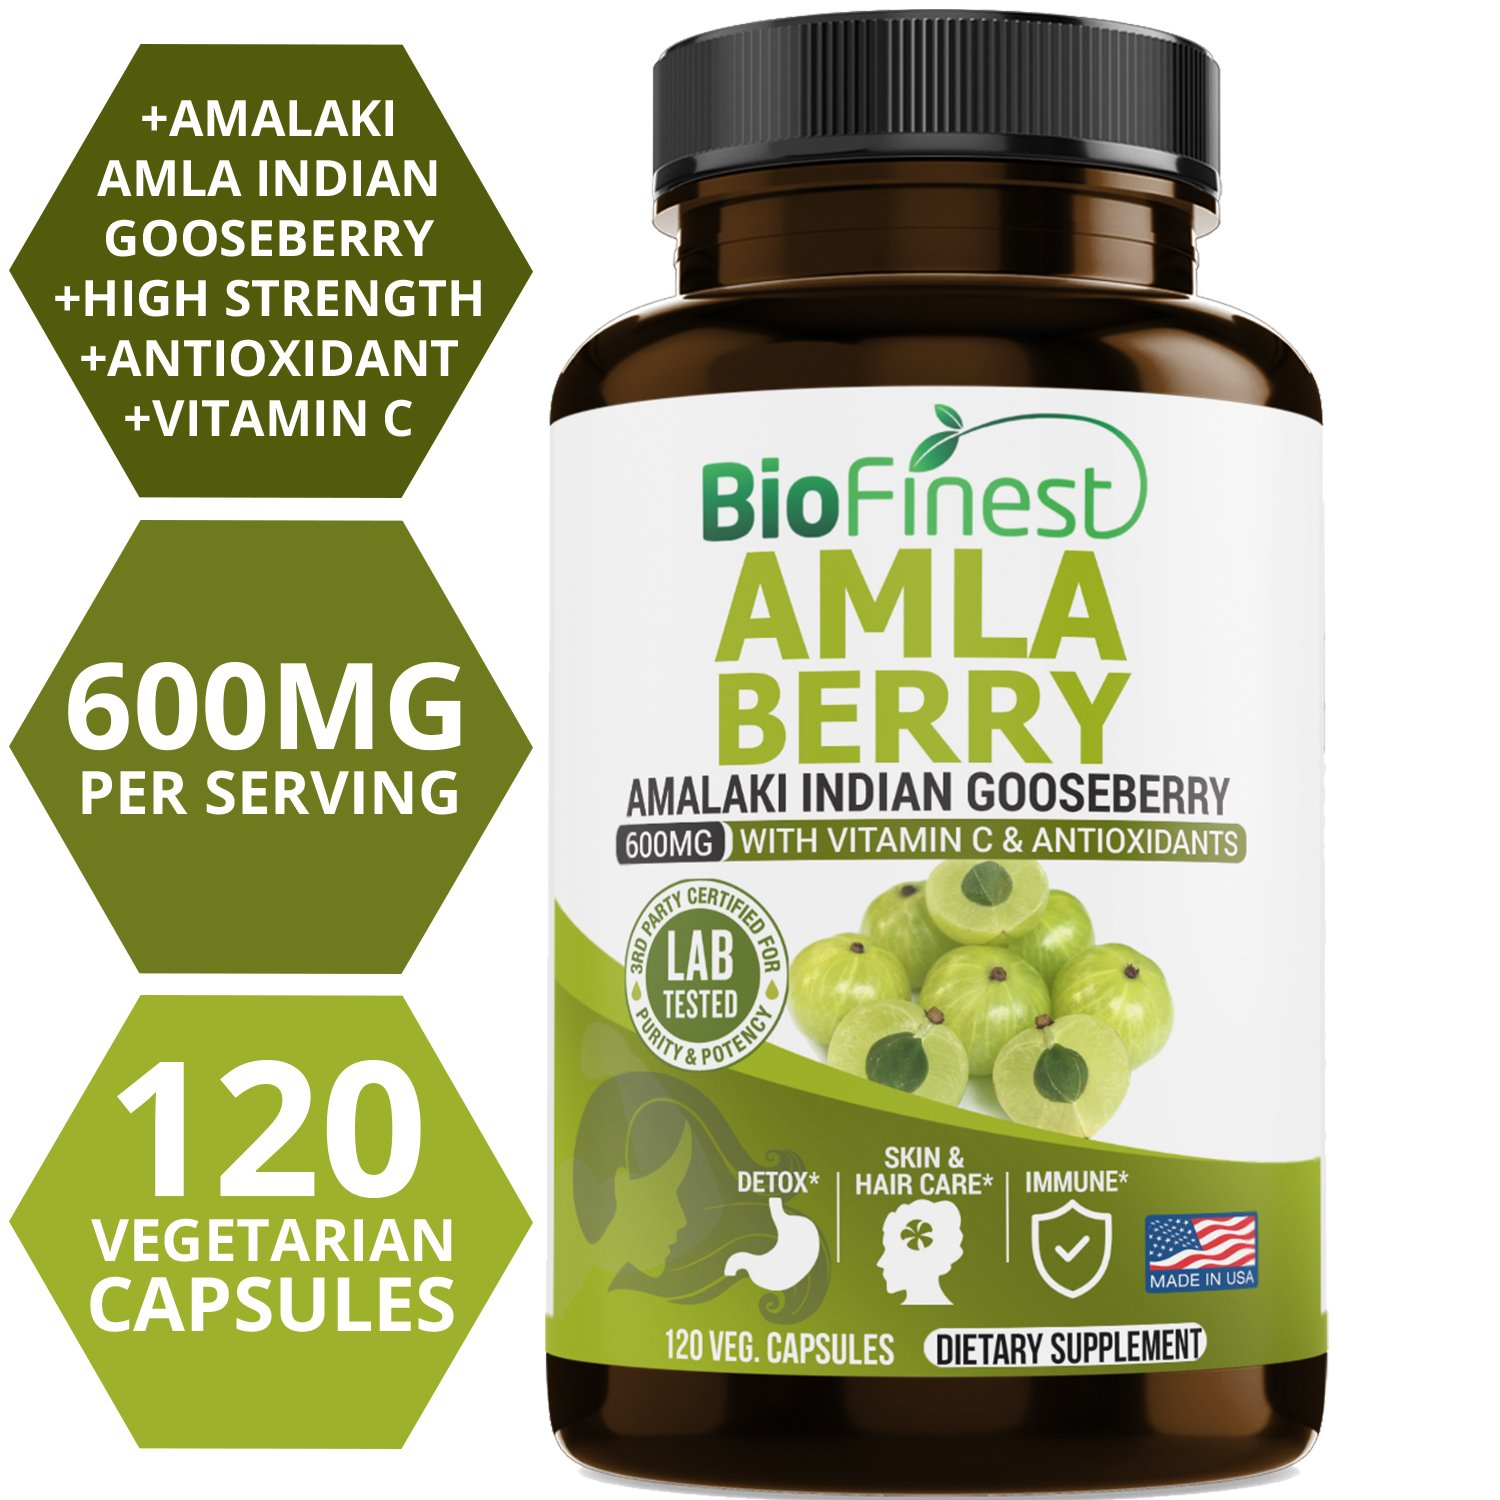 Biofinest Amla Berry (Indian Gooseberry) Capsules - with Vitamin C and Antioxidants - Potent